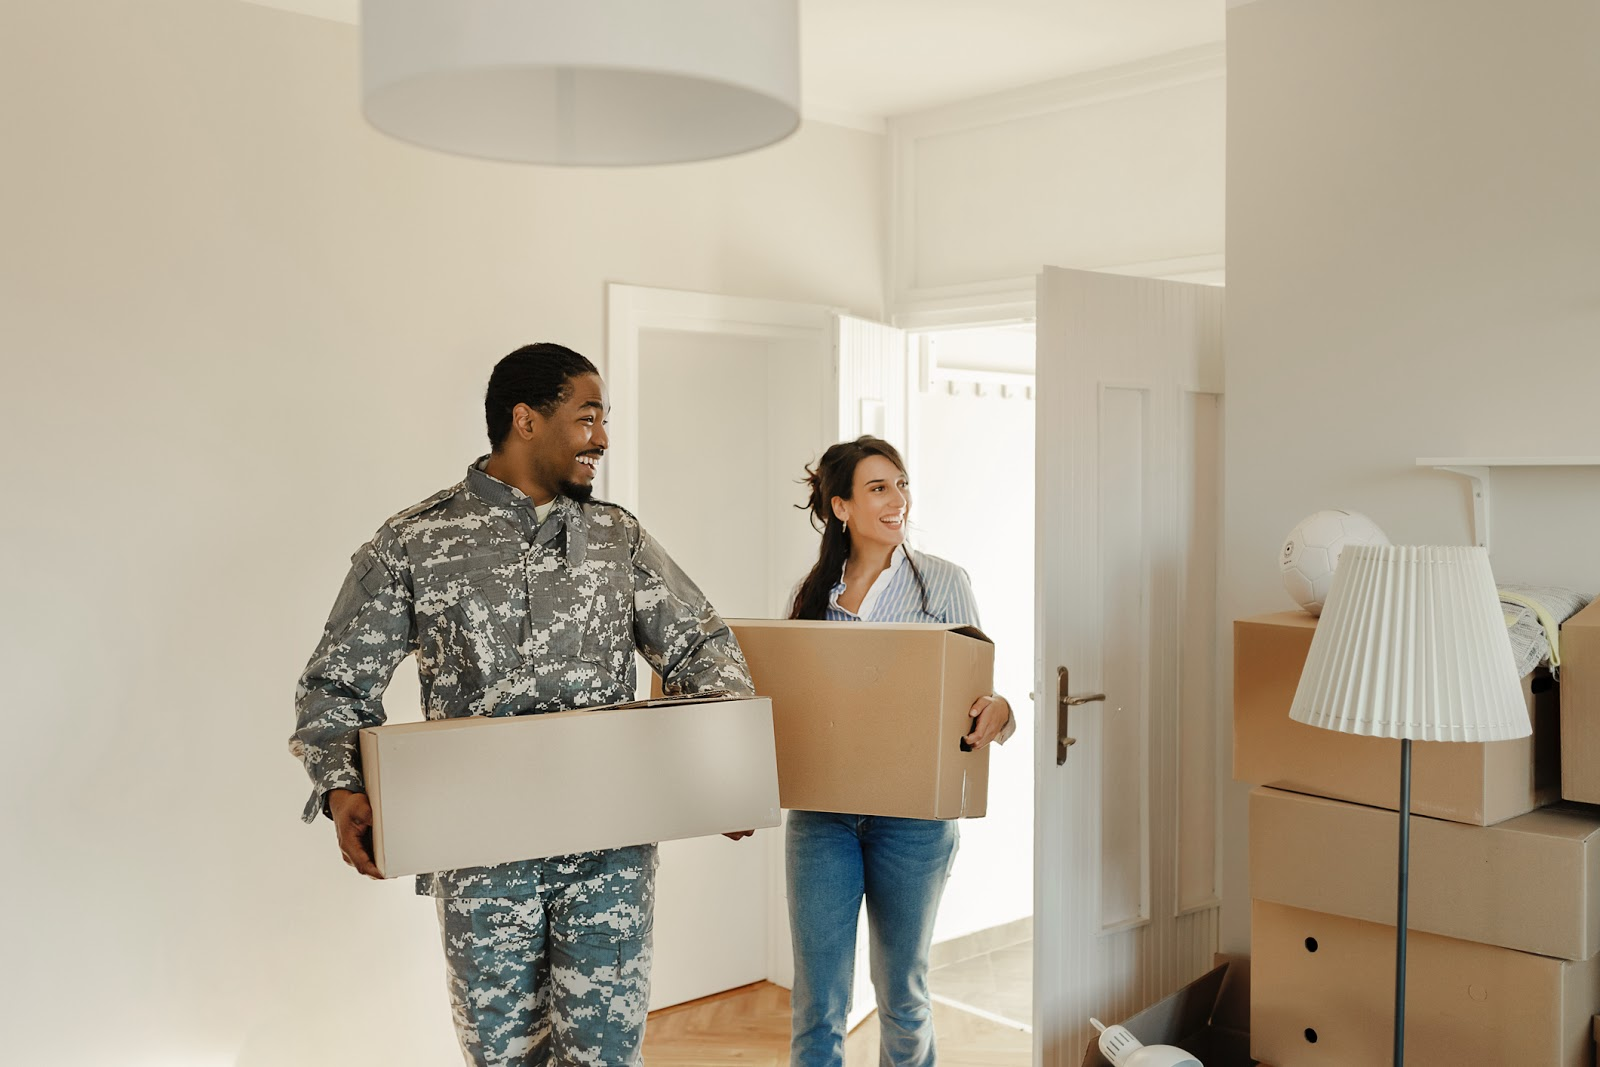 PCS Deals - Discounts for moving military families